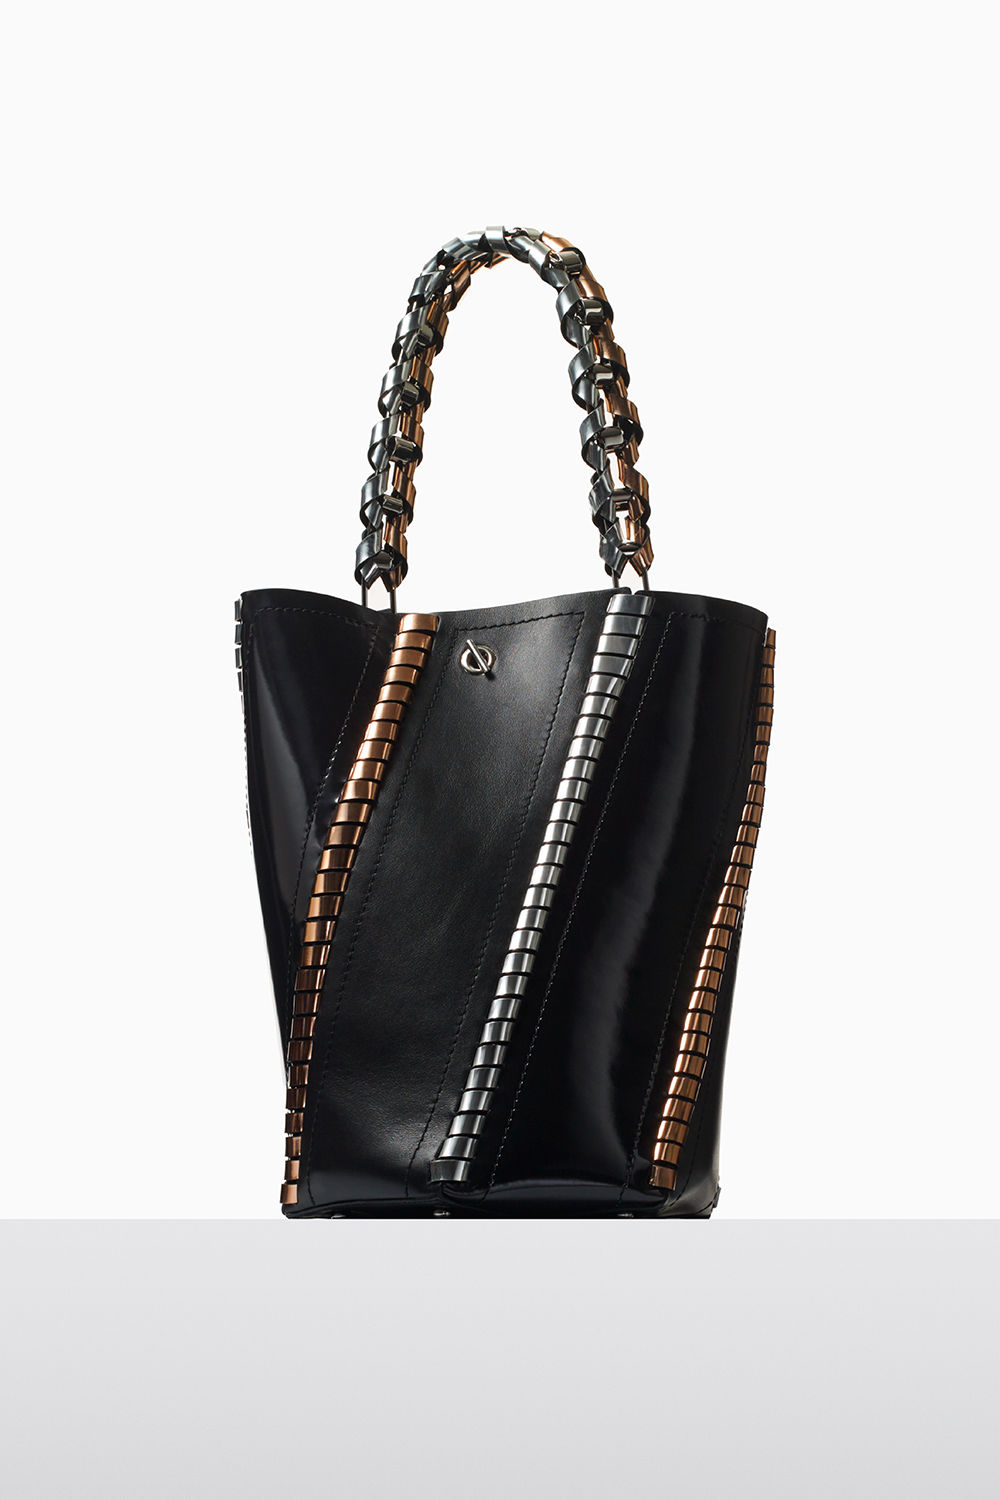 proenza schouler fall 2017 black smooth leather and metallic leather medium hex bucket bag